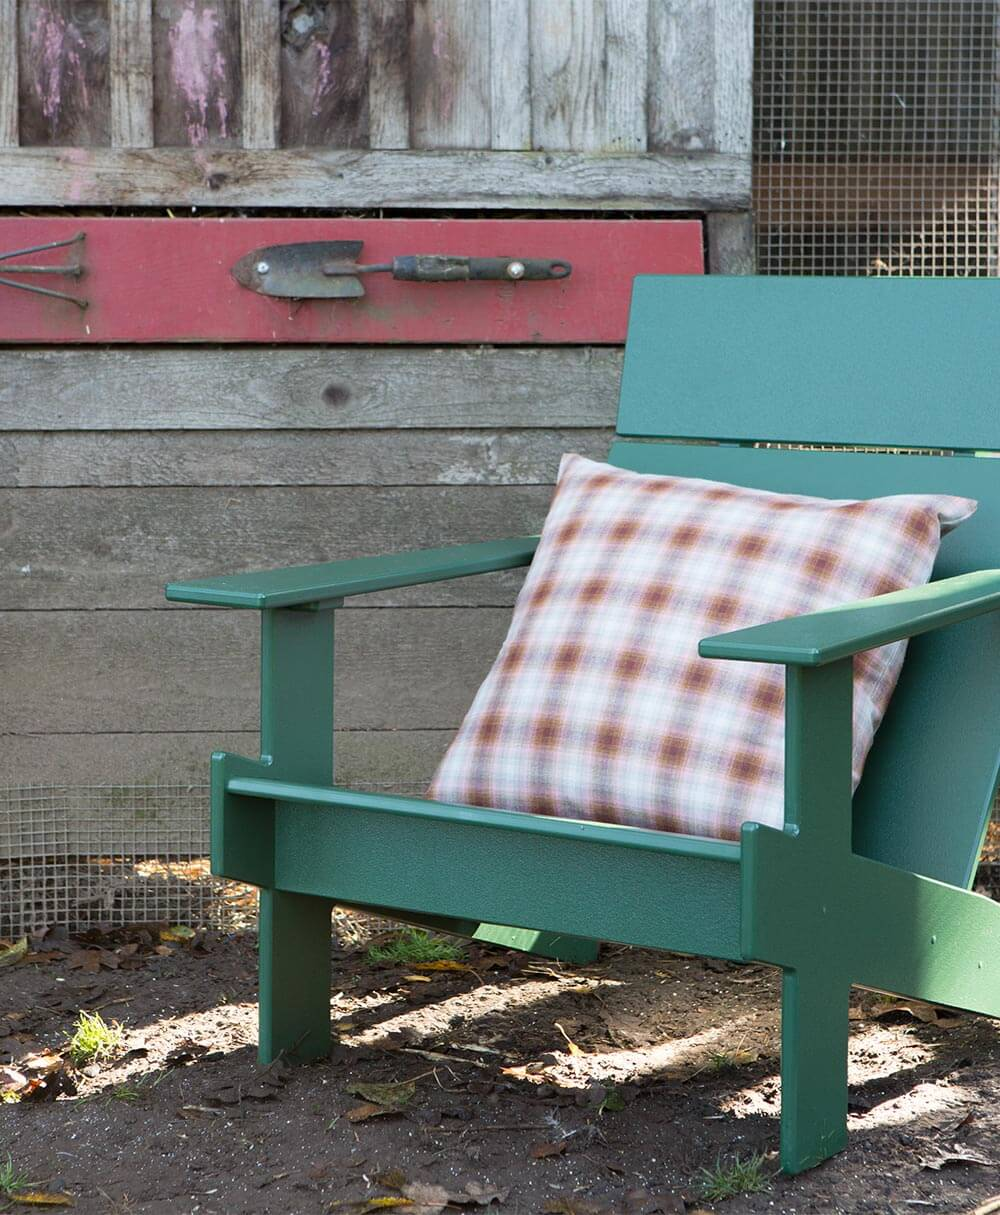 A plaid pillow from the Pendleton by Sunbrella upholstery collection sits on a green adirondack chair.